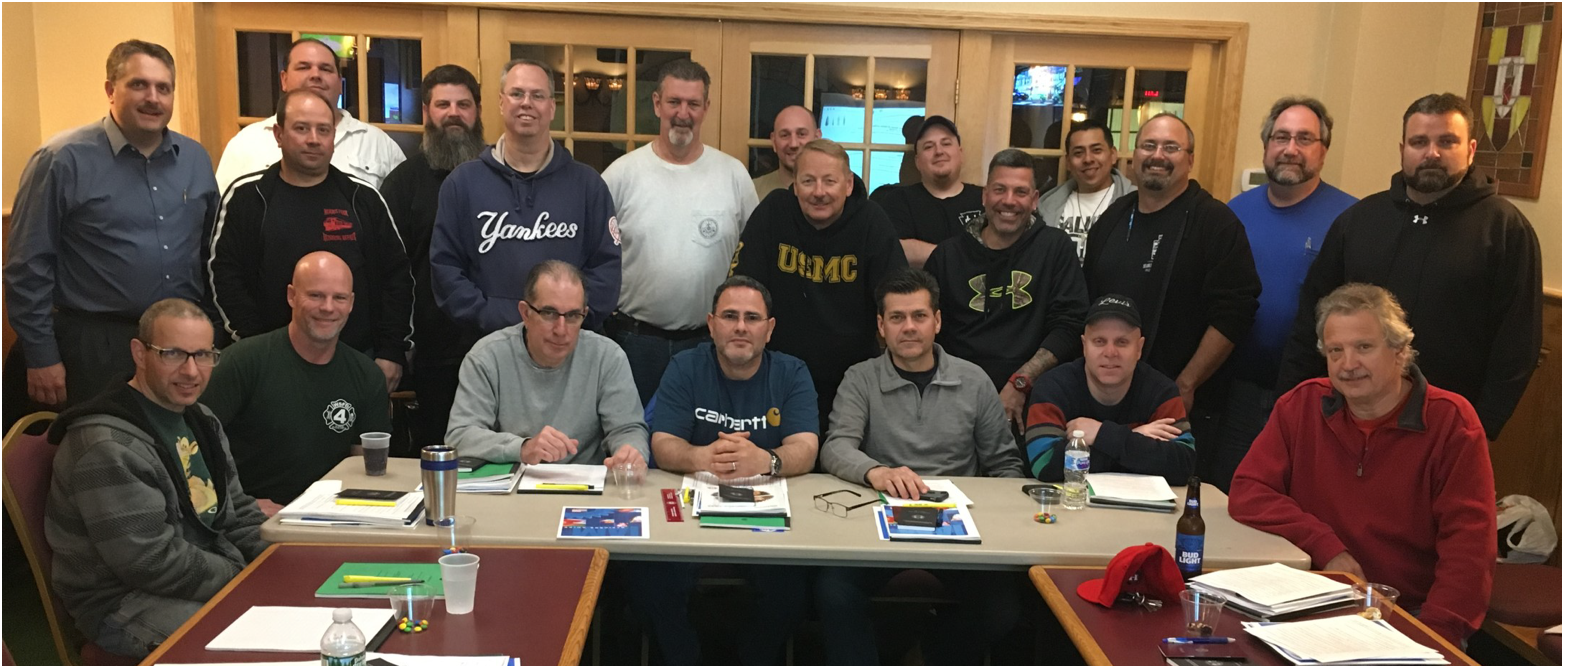 DL 19 Provides Railway Labor Act Training to Local Lodge 754